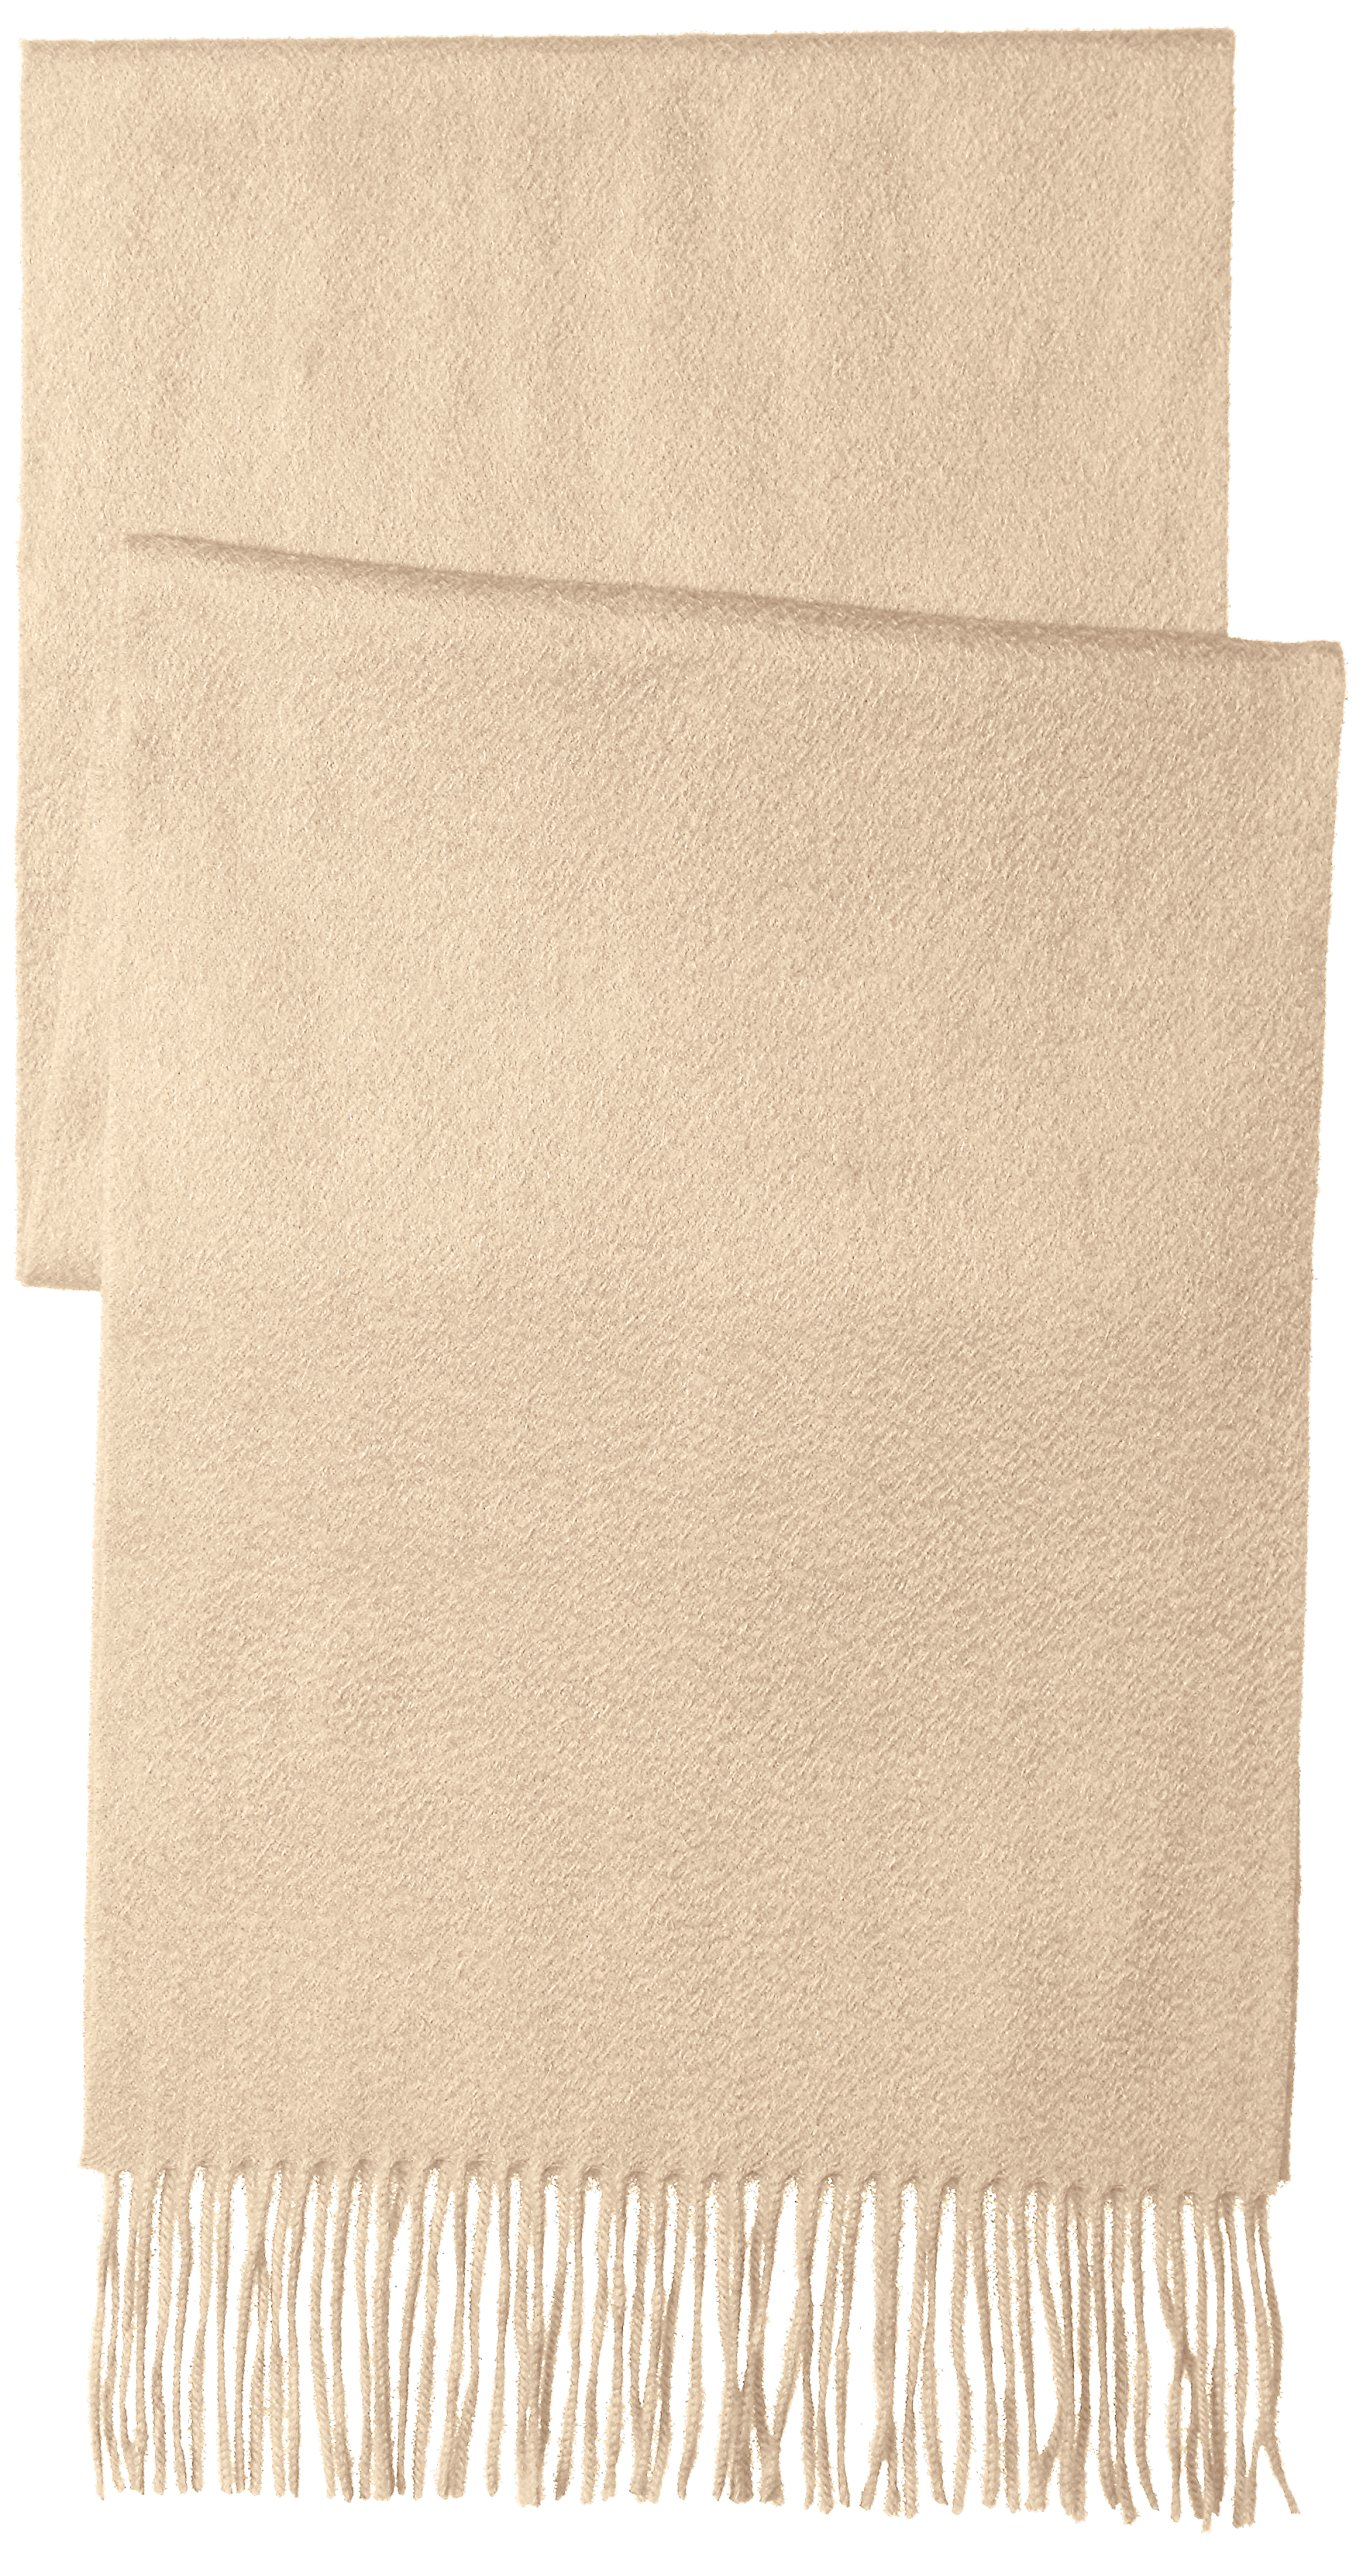 Sofia Cashmere Women's 100% Cashmere Woven Scarf with Fringe, Natural One by Sofia Cashmere (Image #2)